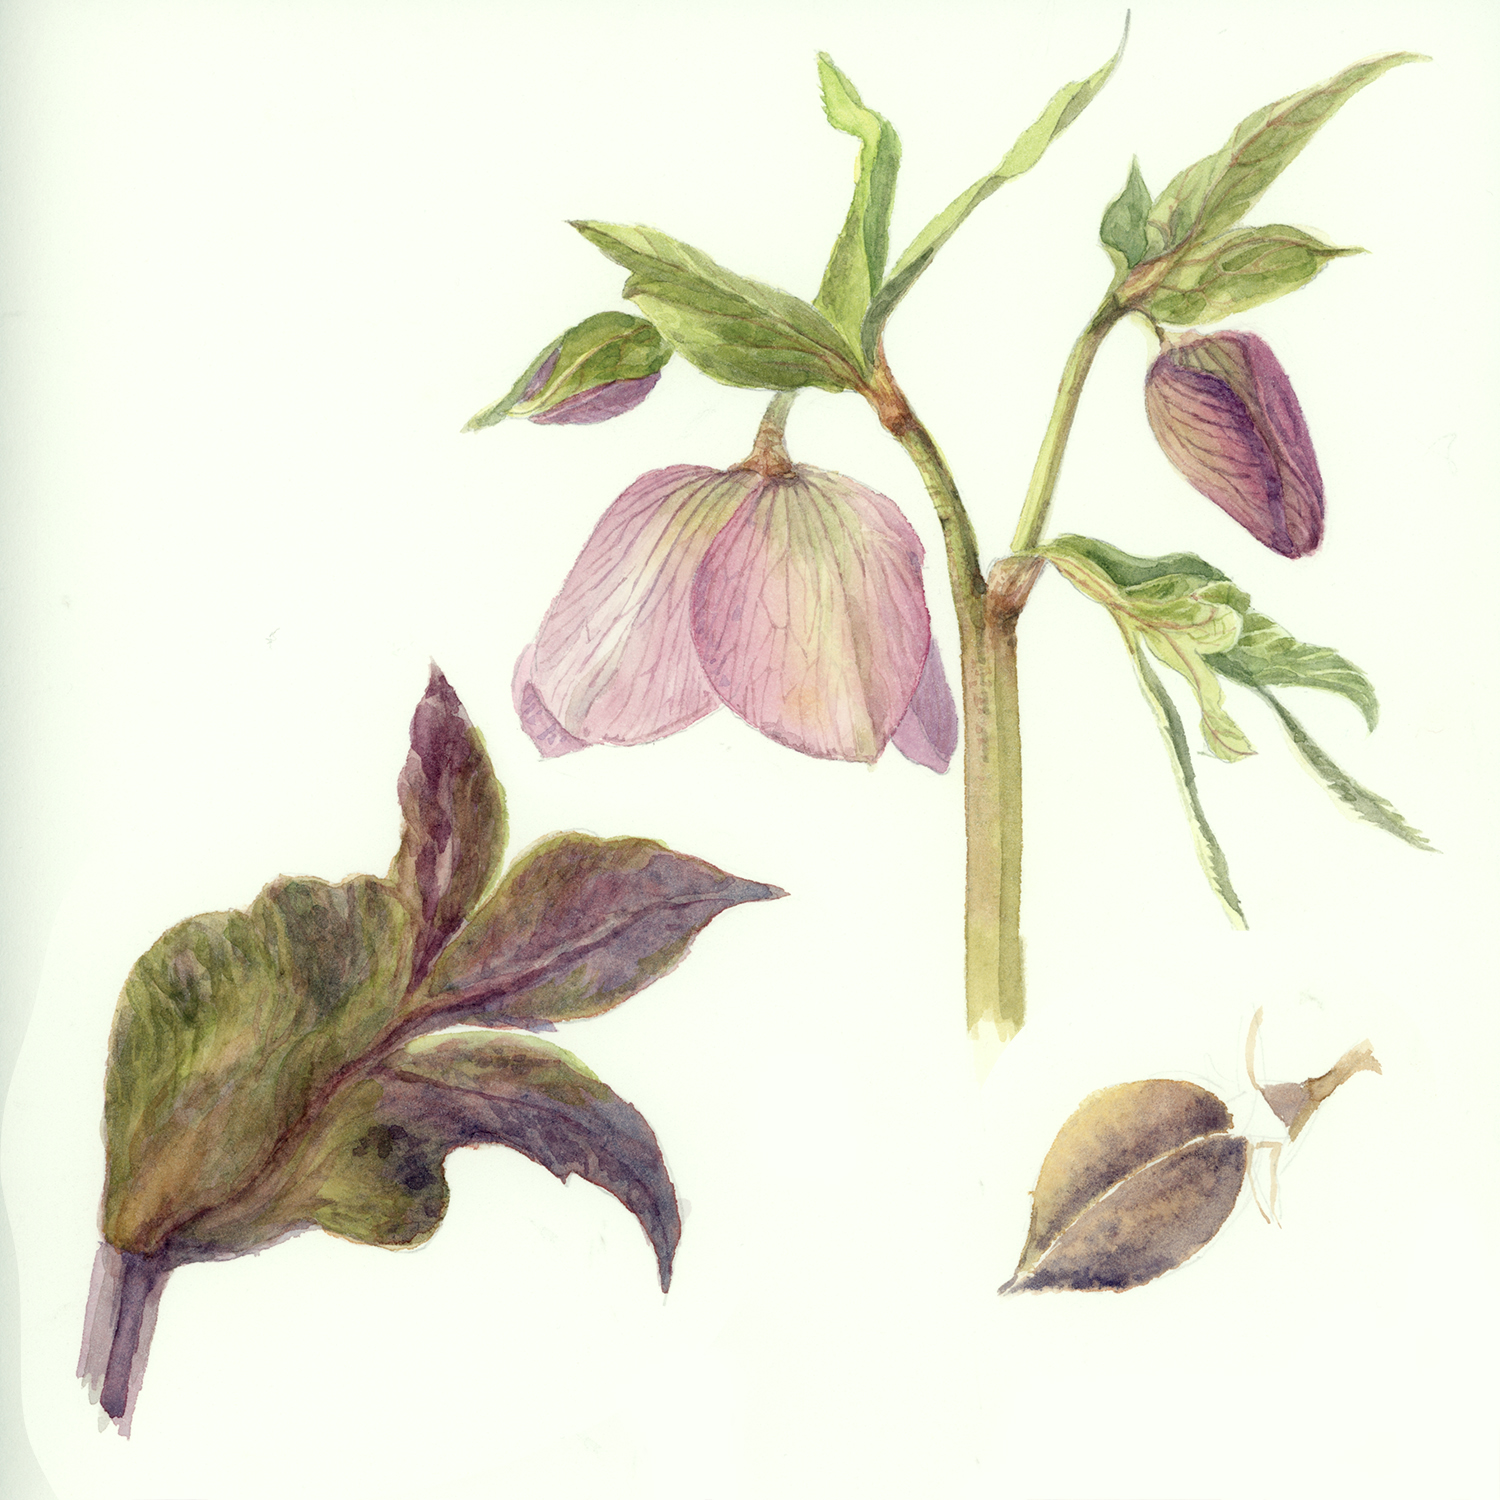 Classroom watercolour botanicals demonstration Katharine Dickinson